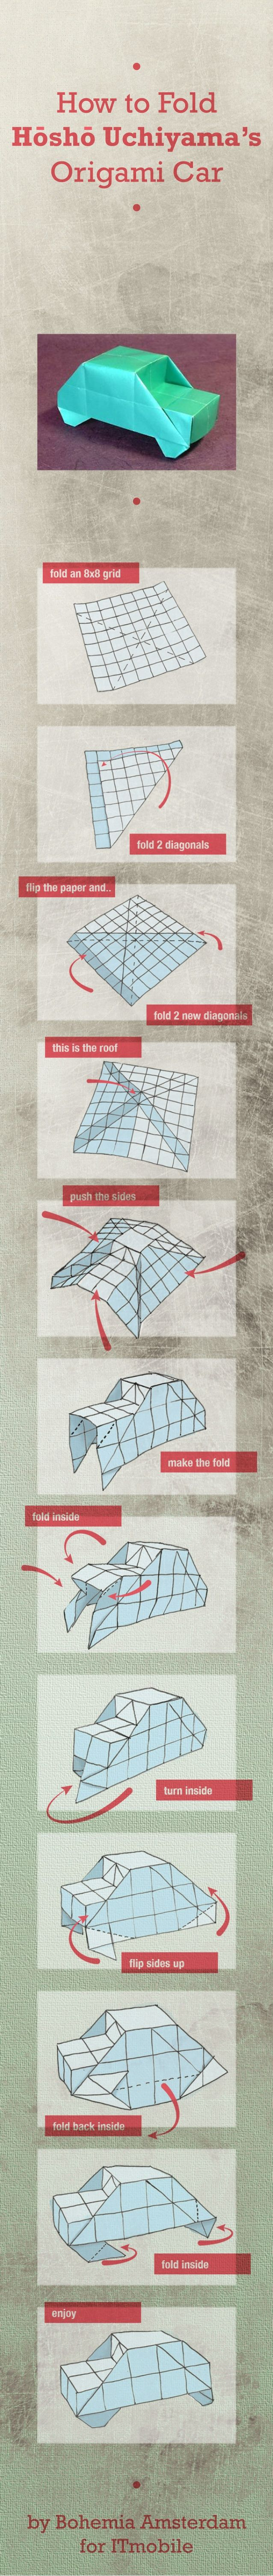 How to fold the famous Hosho Uchiyama 3D paper origami car in 12 steps.